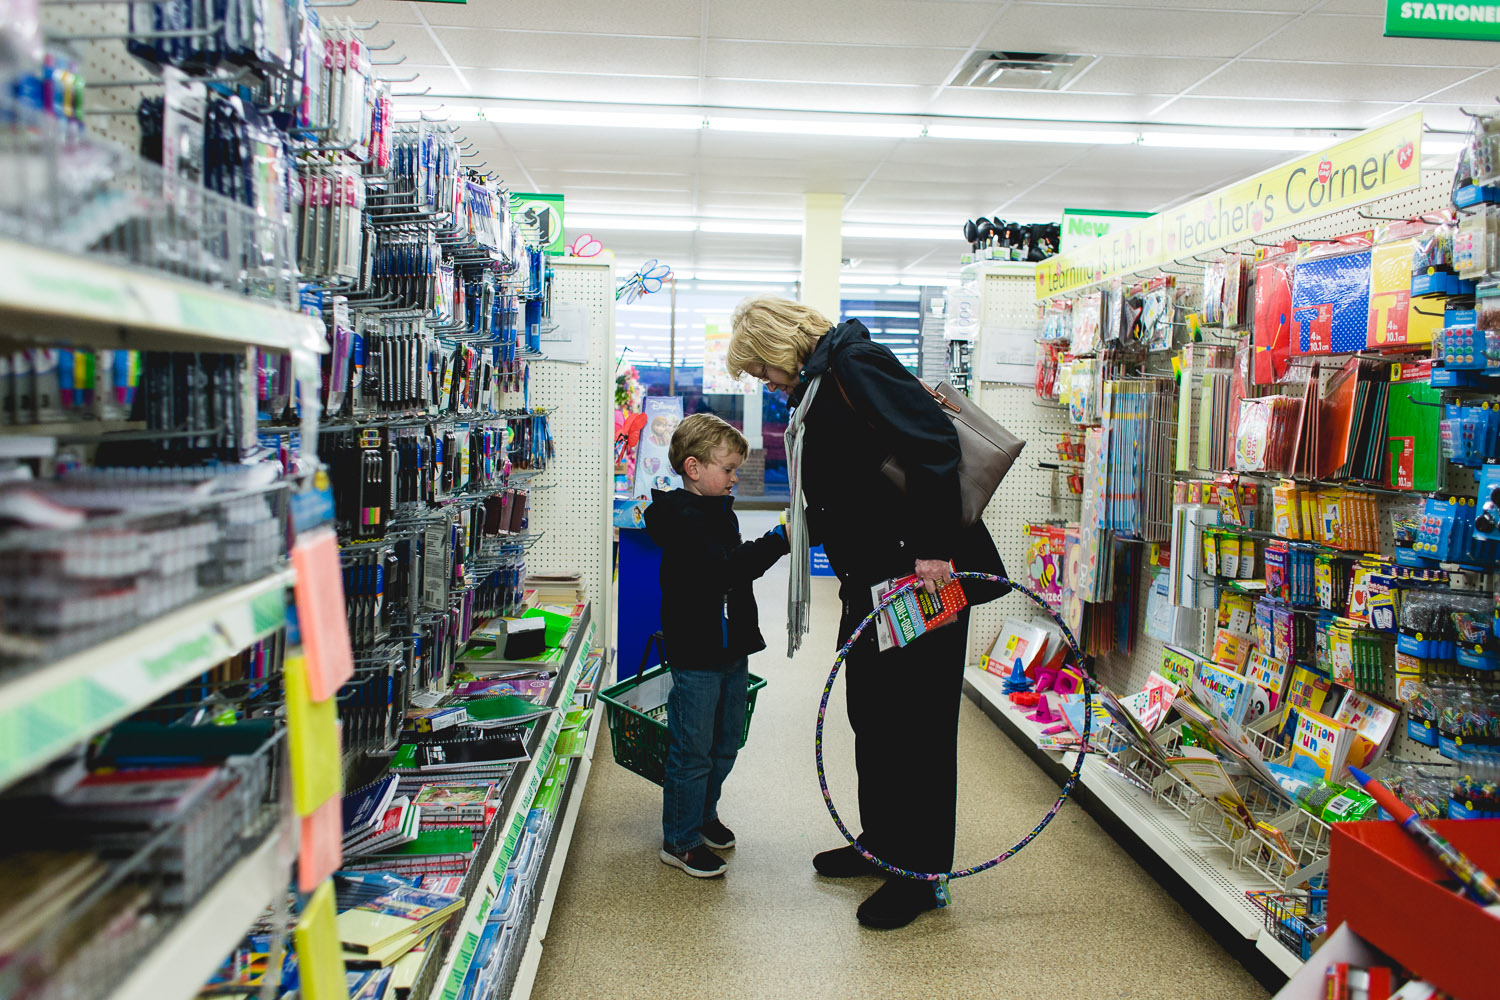 Grandmother takes her grandson shopping at the Dollar Tree